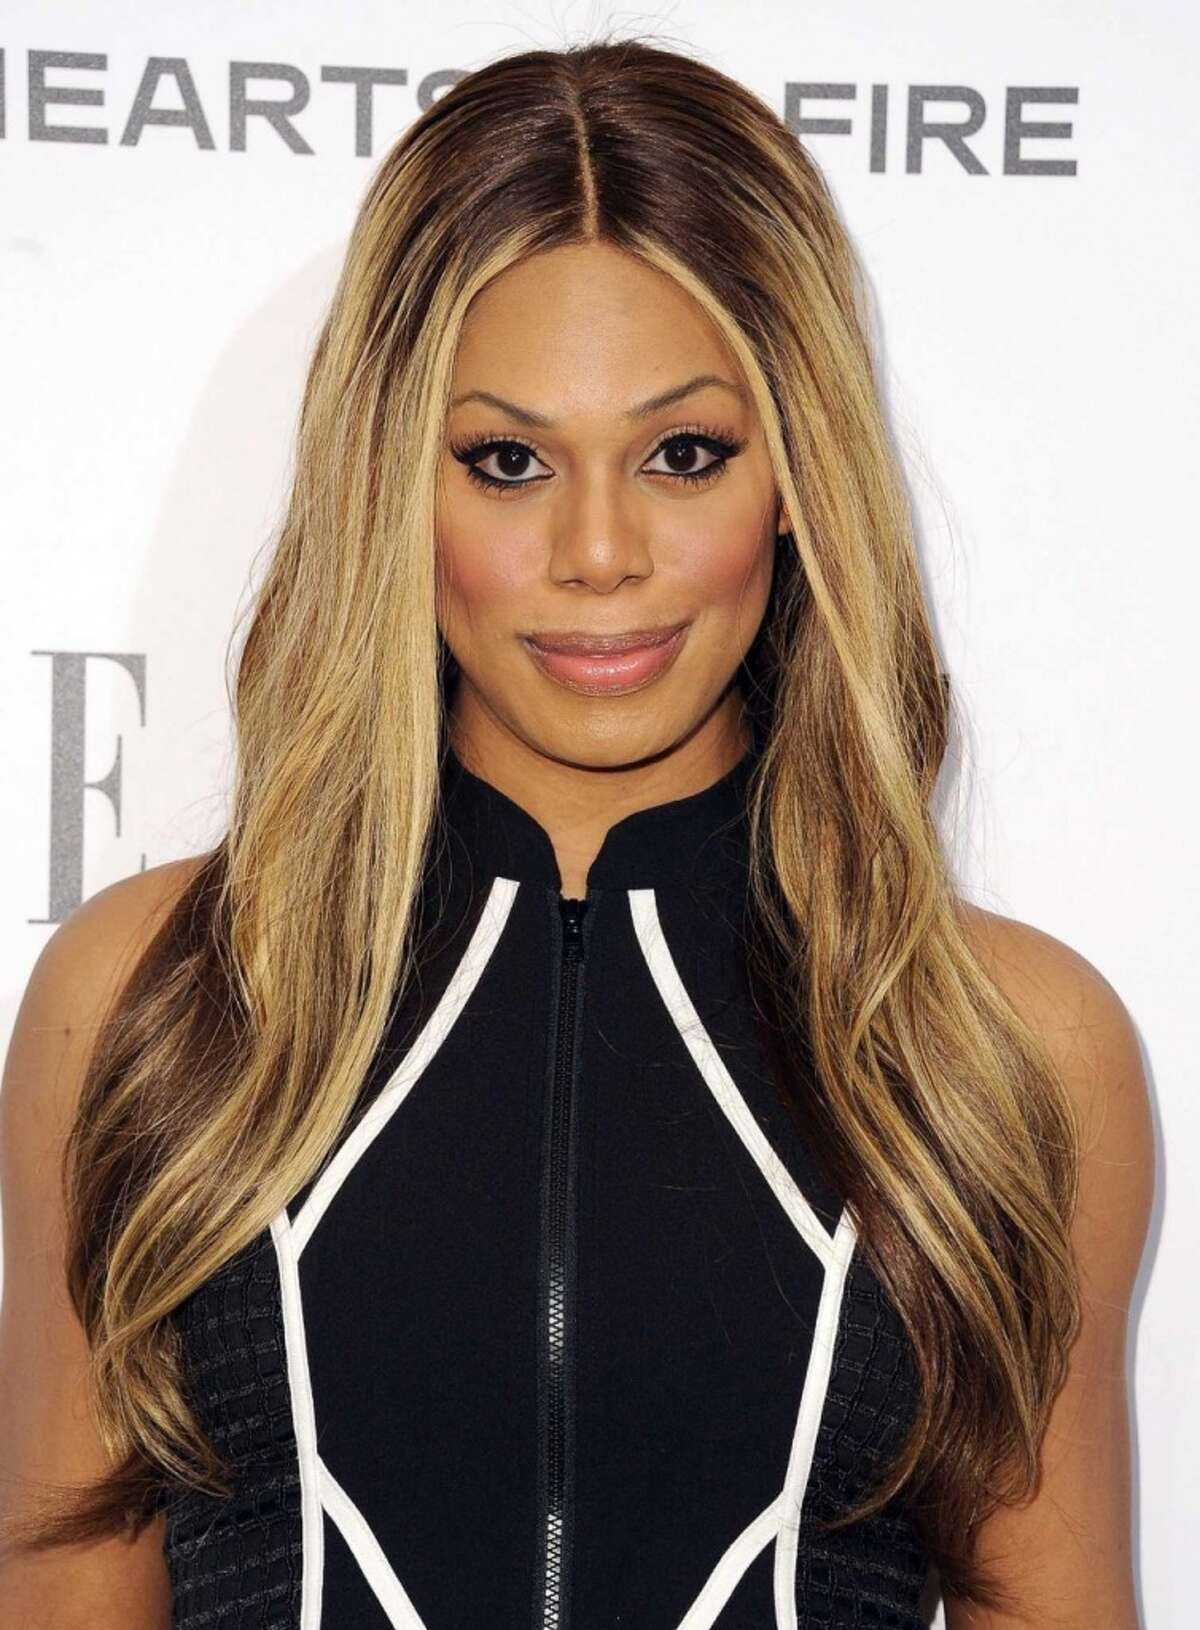 Laverne Cox attends ELLE's Annual Women in Television Celebration on January 22, 2014 in West Hollywood, California. (Photo by Michael Buckner/Getty Images for Elle)